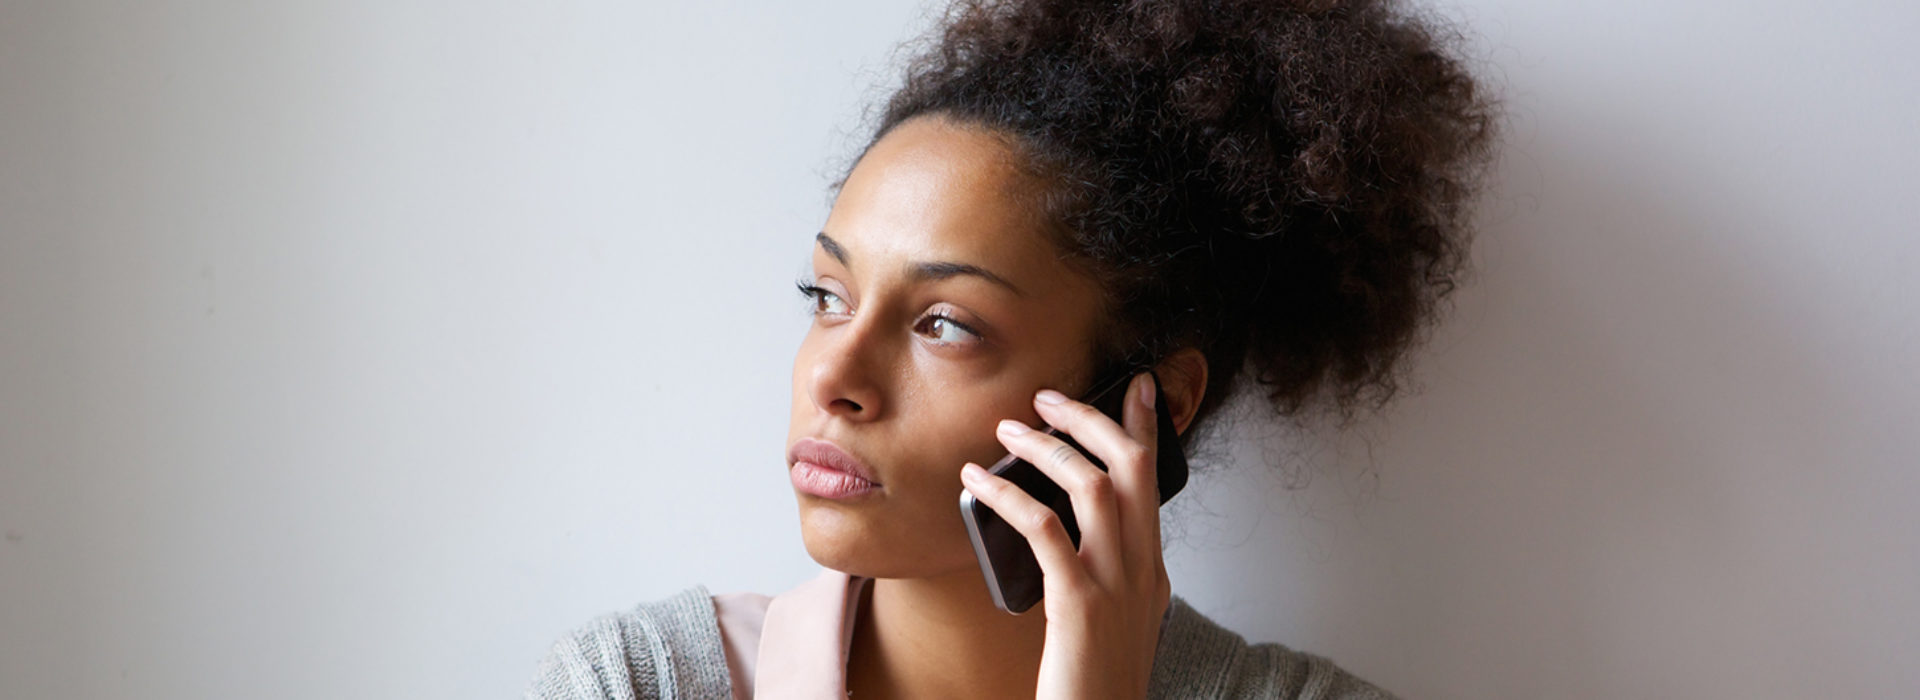 Concerned black woman on phone